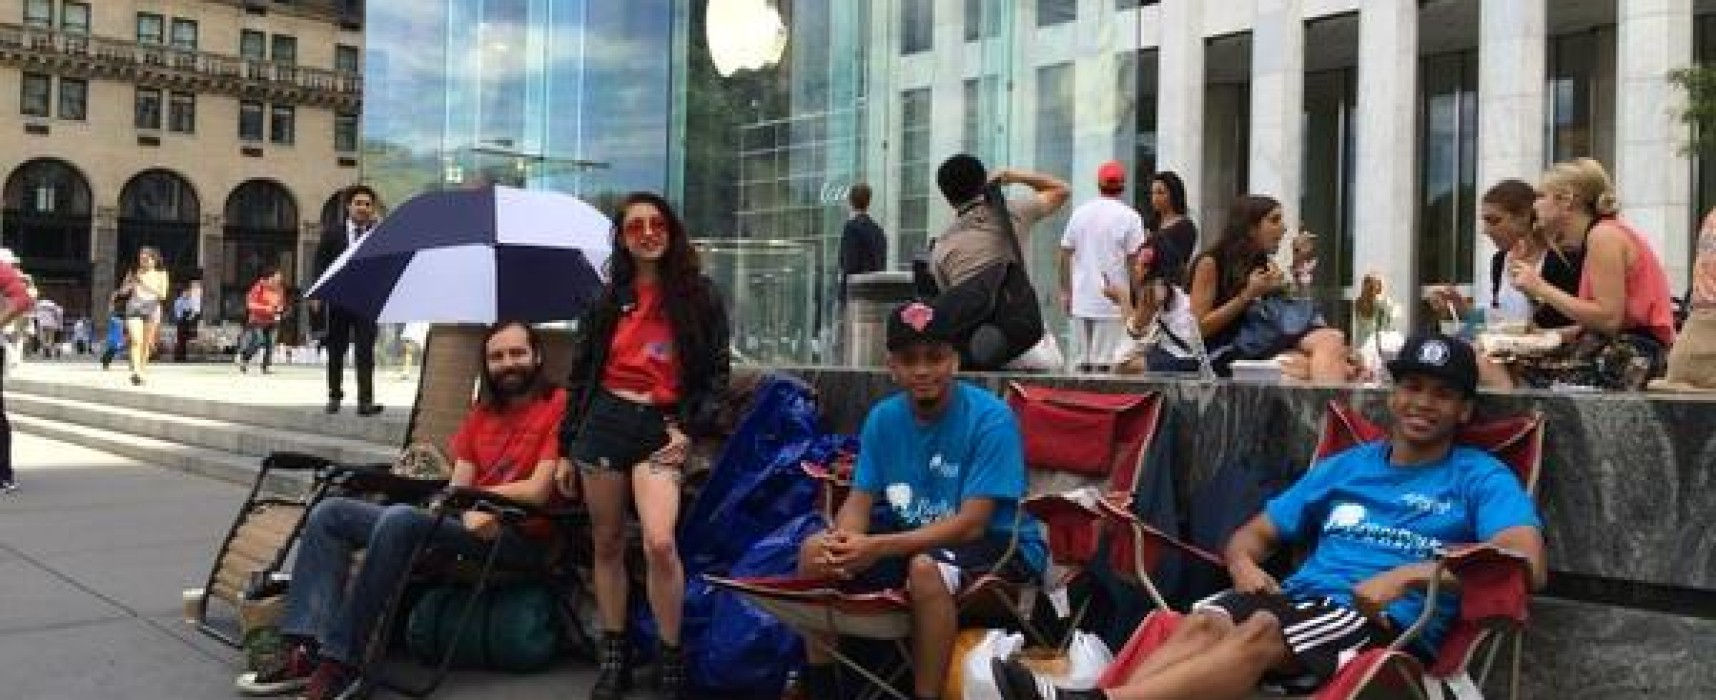 Was the Latest iPhone REALLY Worth Queuing For?